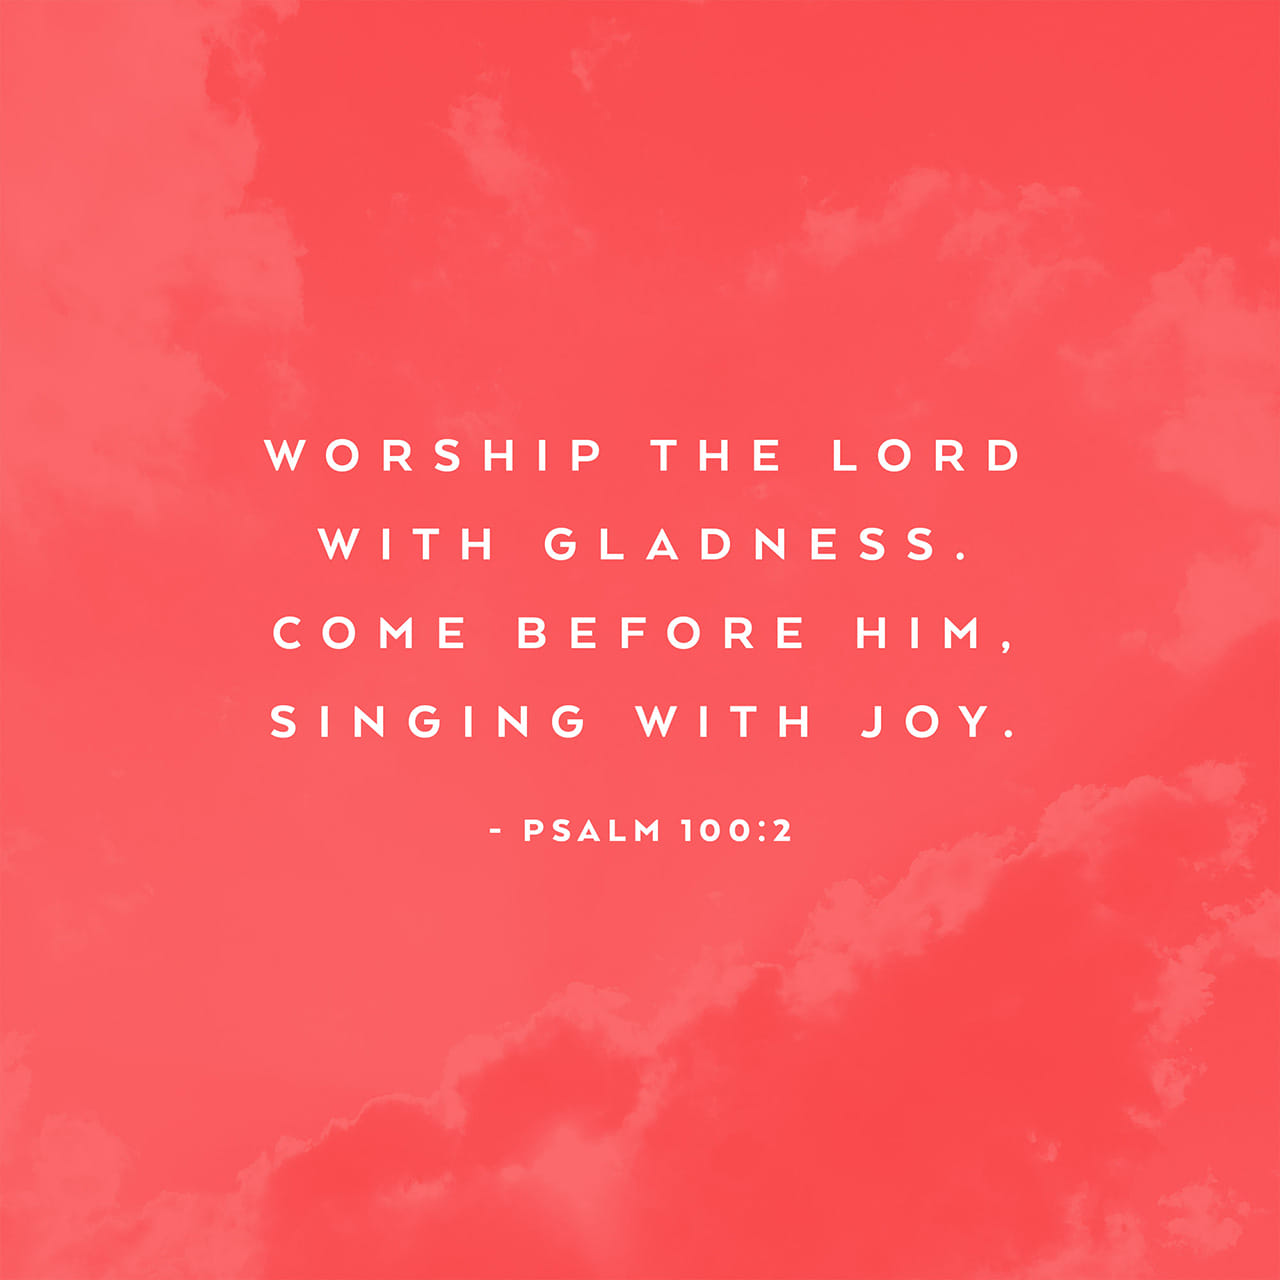 Psalm 100:2 Worship the LORD with gladness